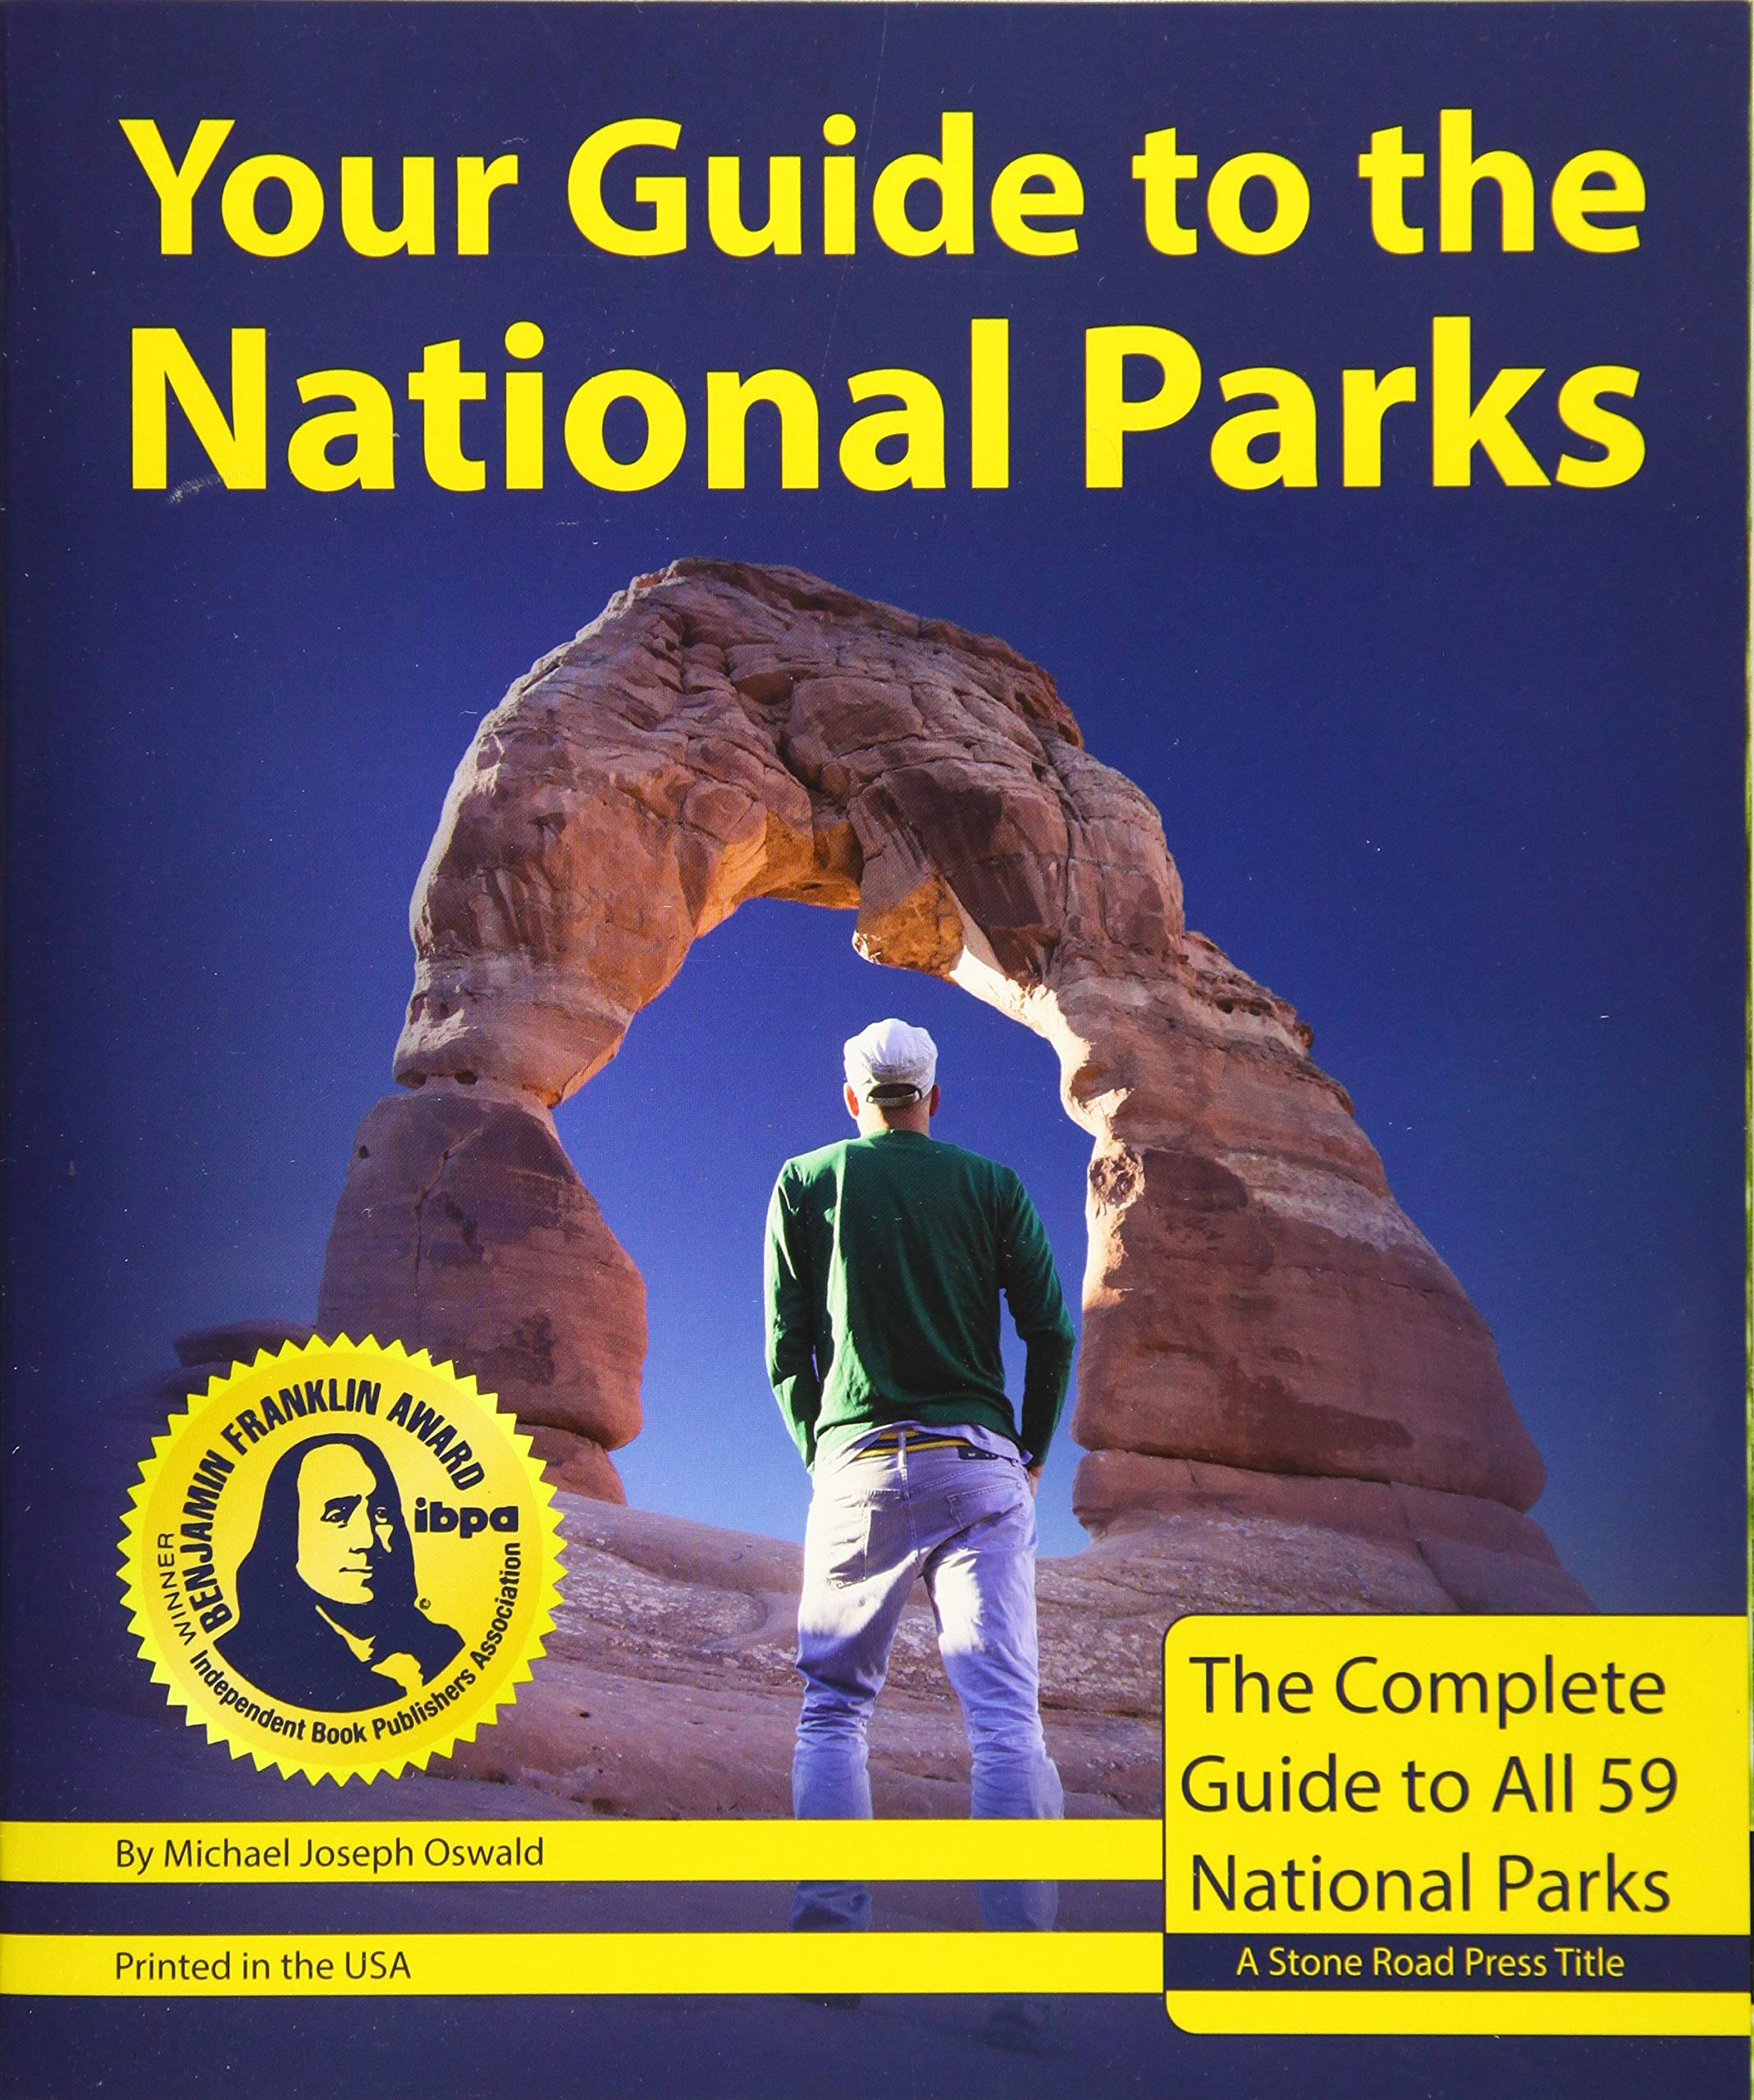 Your Guide to the National Parks: The Complete Guide to all 59 National Parks (Second edition) by Stone Road Press